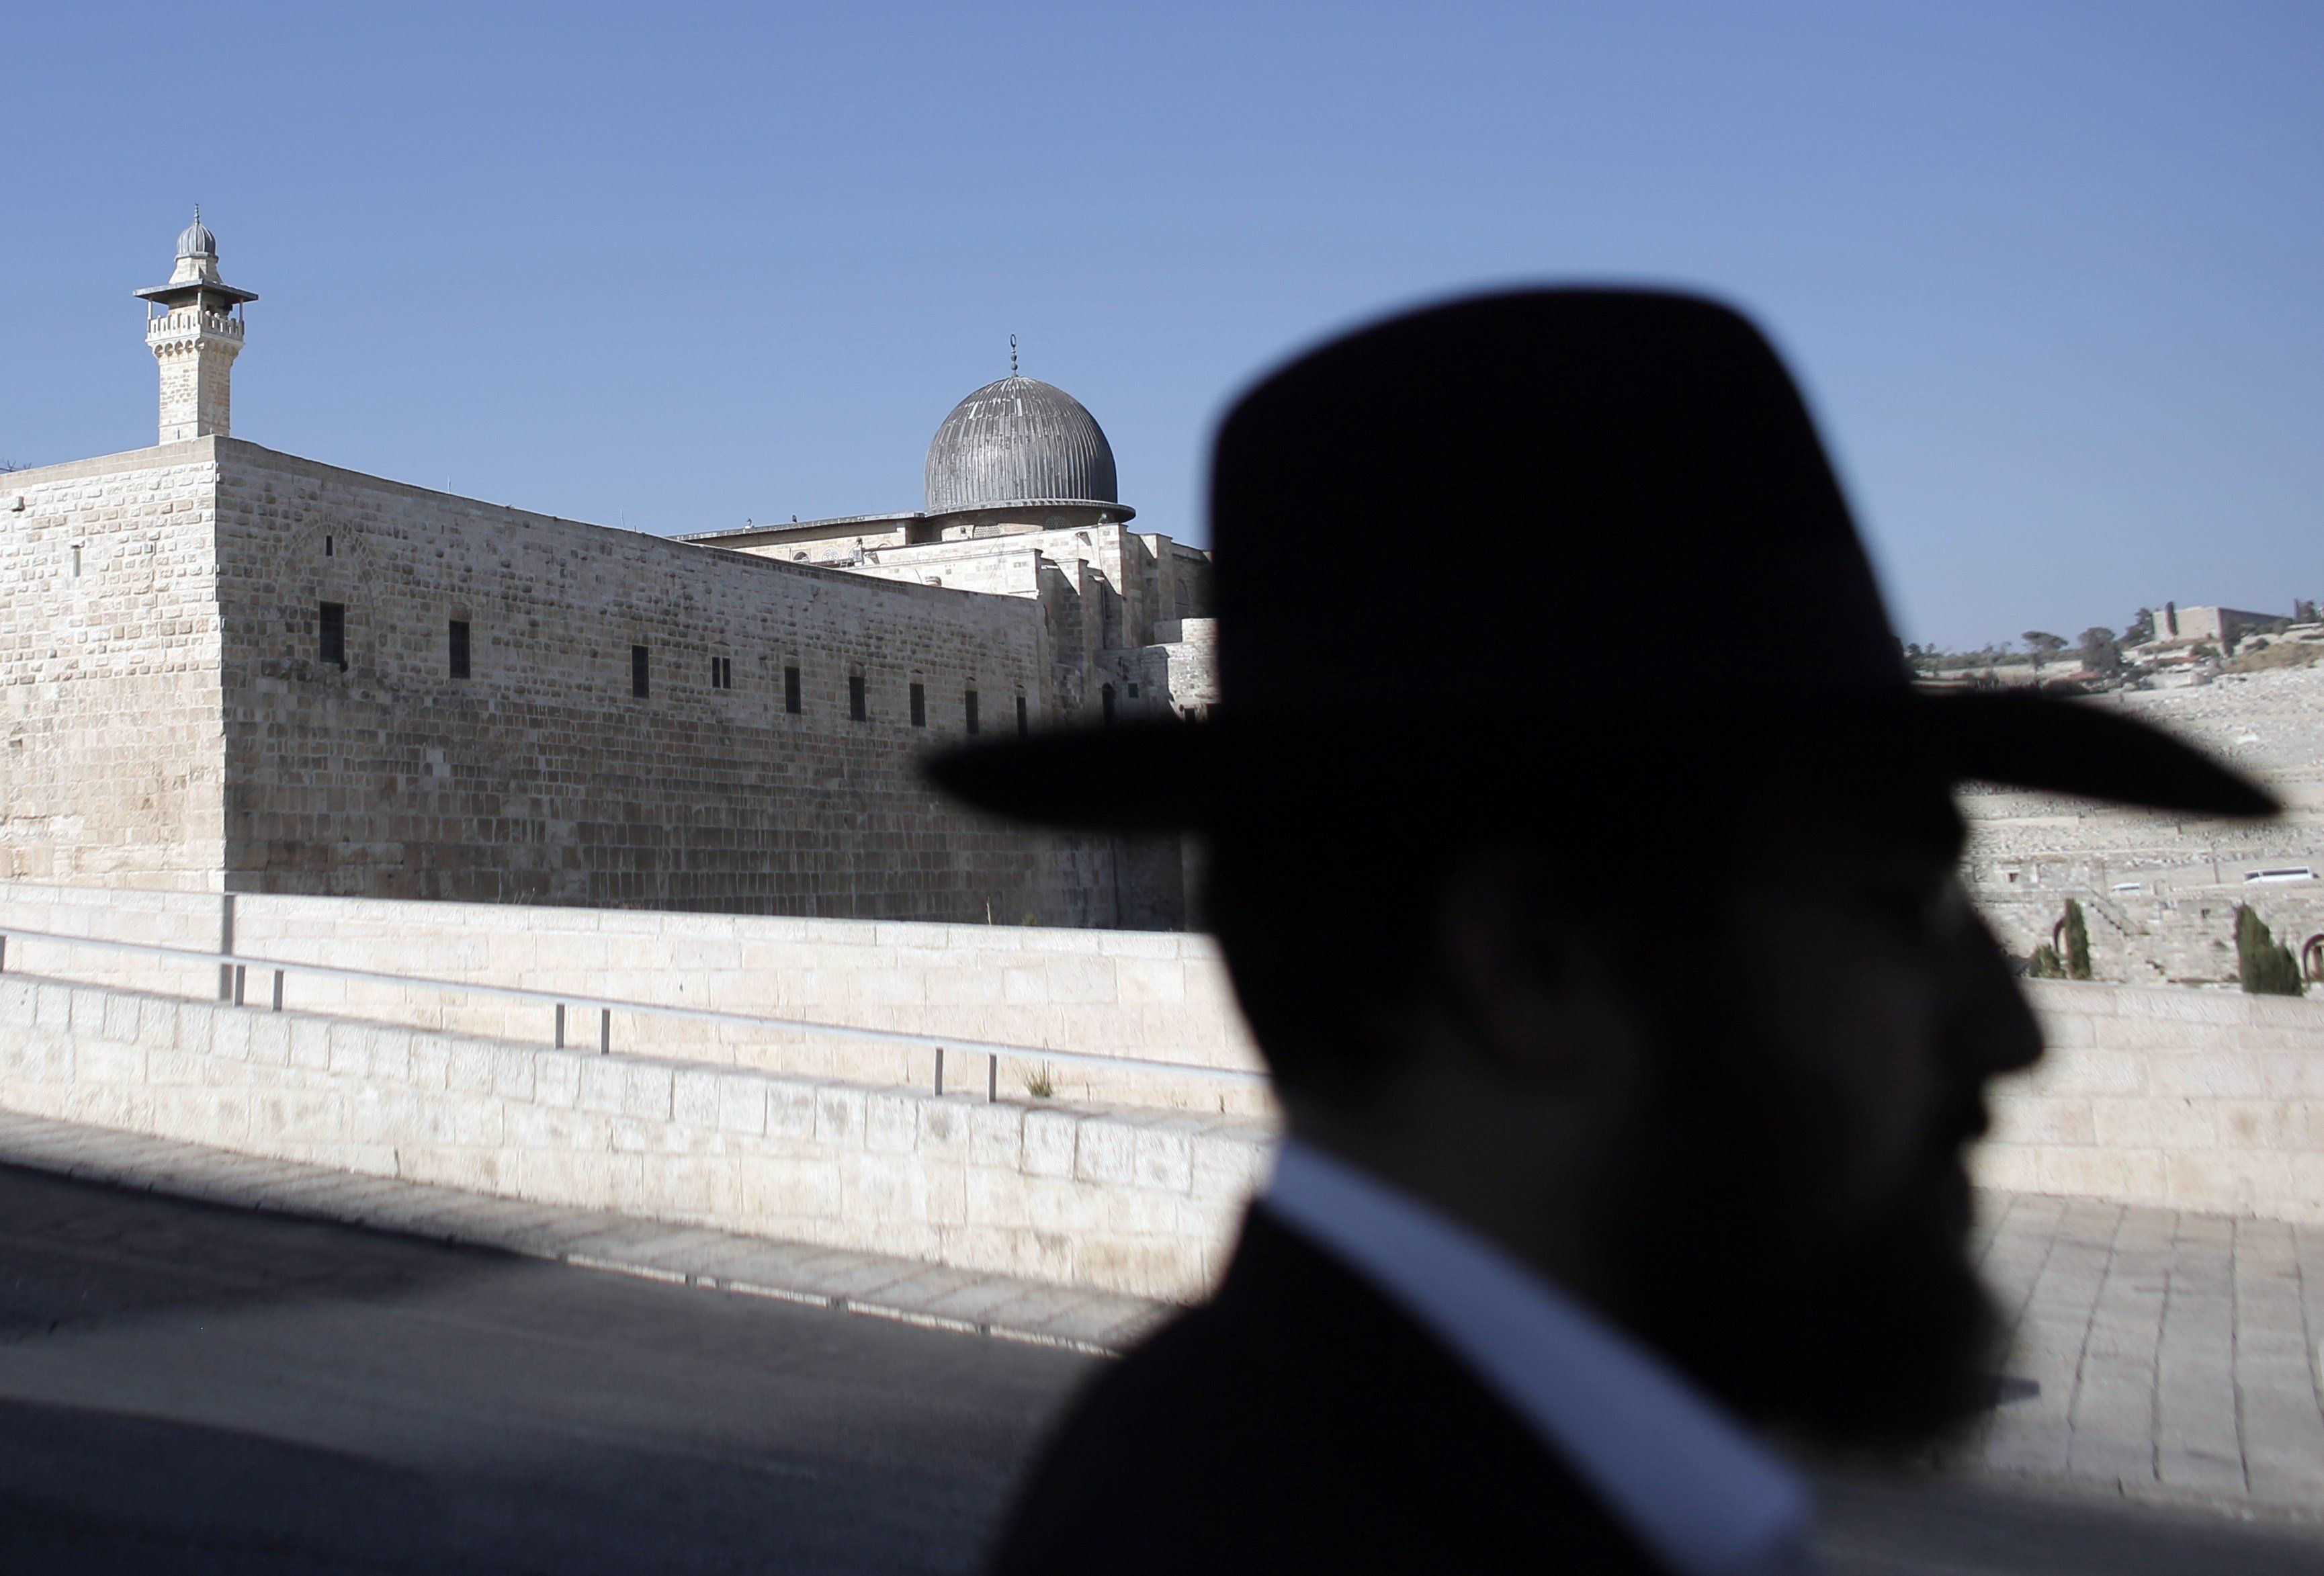 A picture shows the silhouette of an Orthodox Jew standing in the Jewish quarter of Jerusalem's Old City, backdropped by the dome of the al-Aqsa mosque, on July 14, 2015. AFP PHOTO /AHMAD GHARABLI        (Photo credit should read AHMAD GHARABLI/AFP/Getty Images)